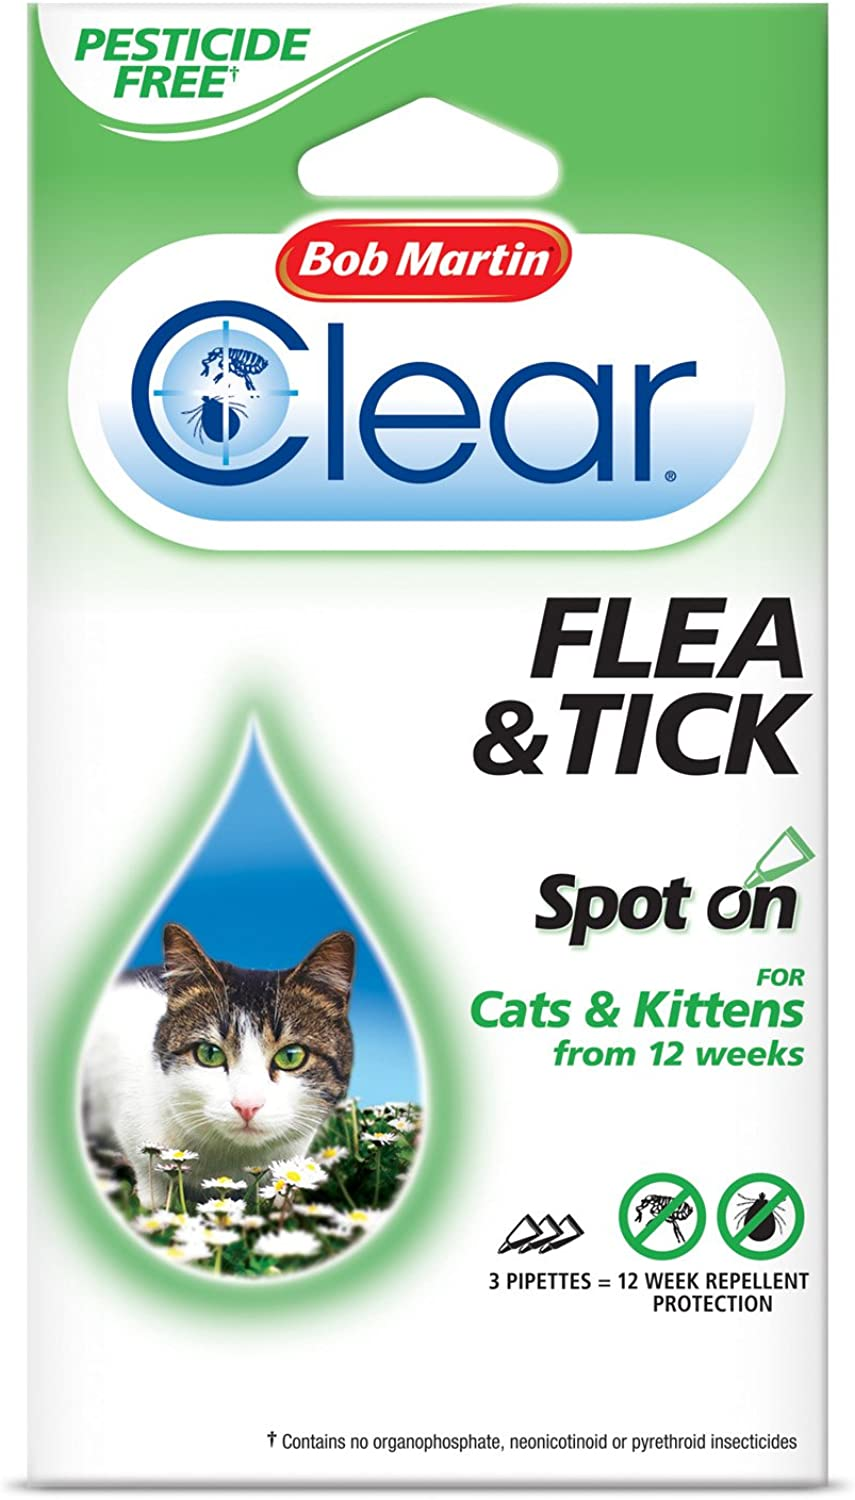 Bob Martin Clear Cat Spot On 12 Weeks Peticide Free (Pack of 10)